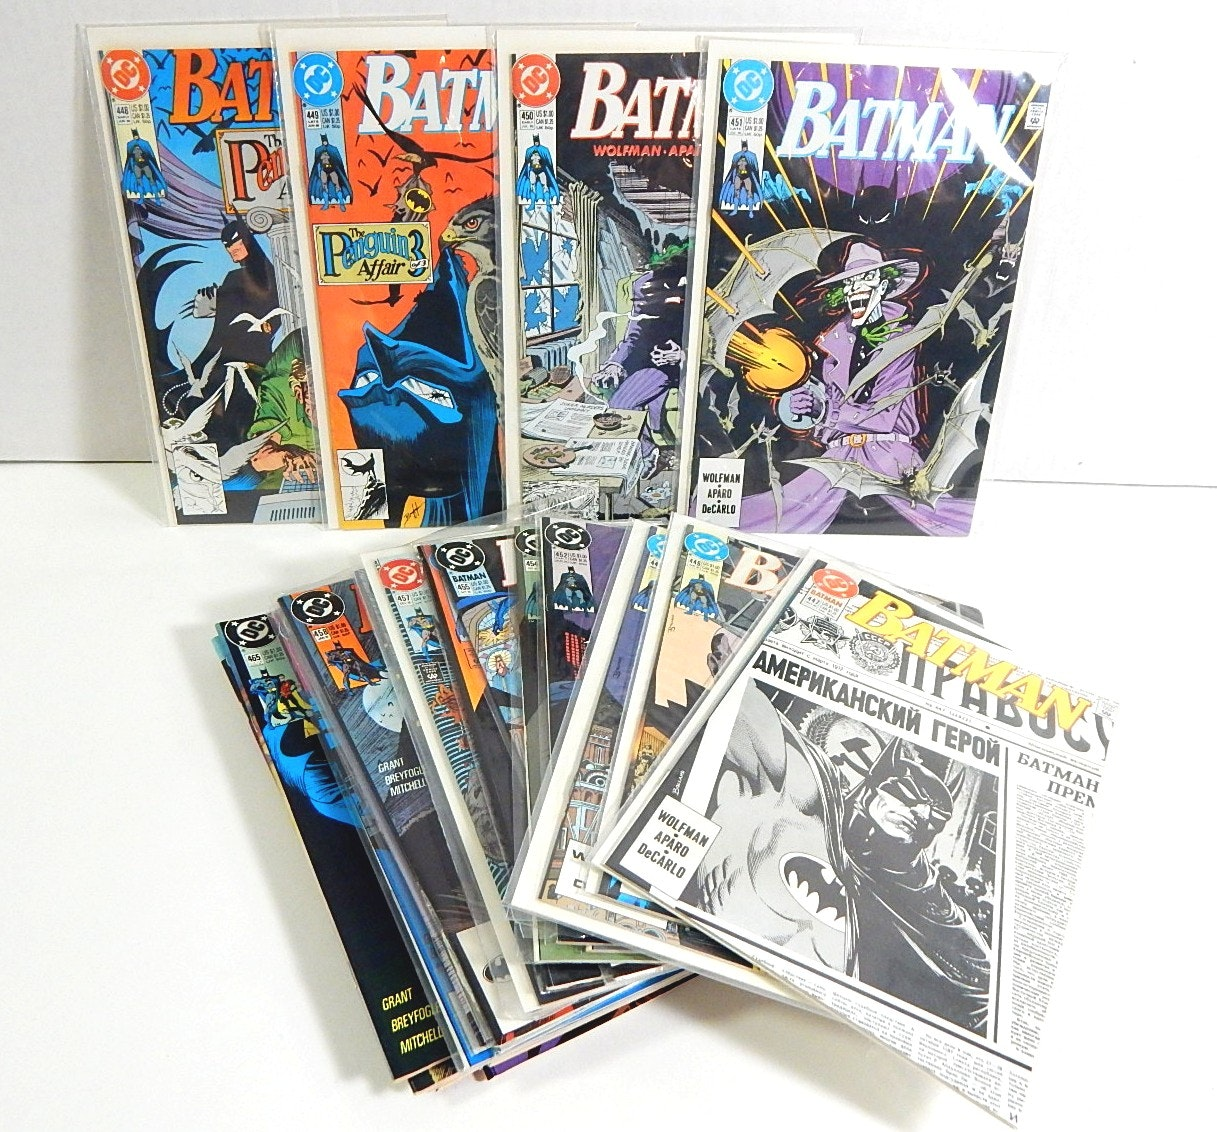 """Collection of 1990s DC Comics with """"Batman"""" and """"Knightfall Batman"""""""